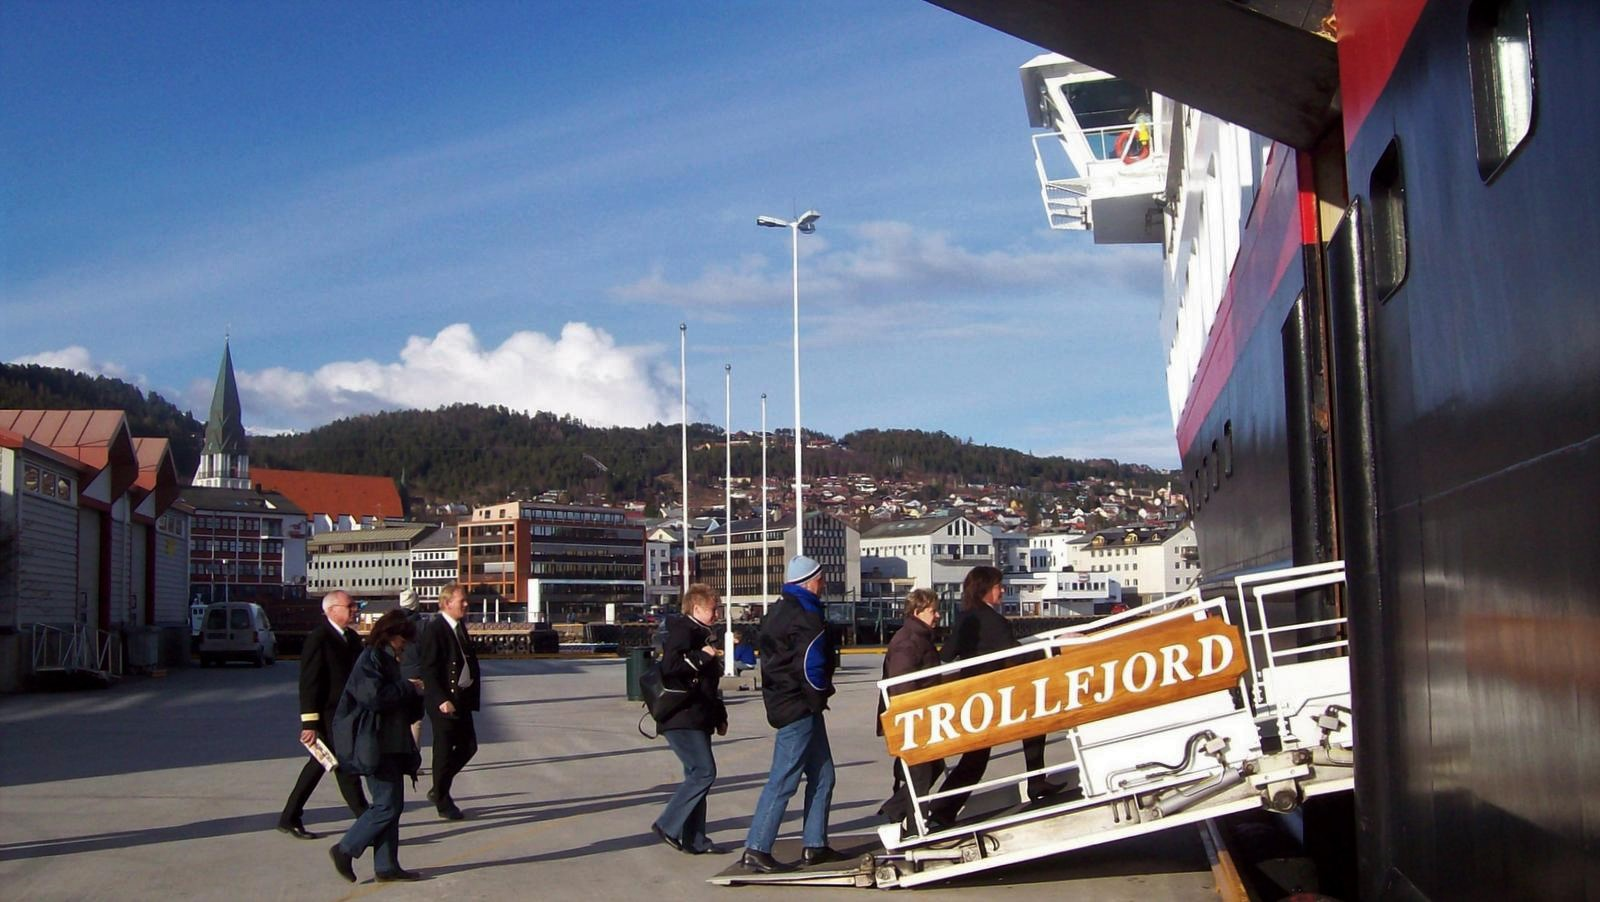 Hurtigruten - MS Trollfjord in Molde